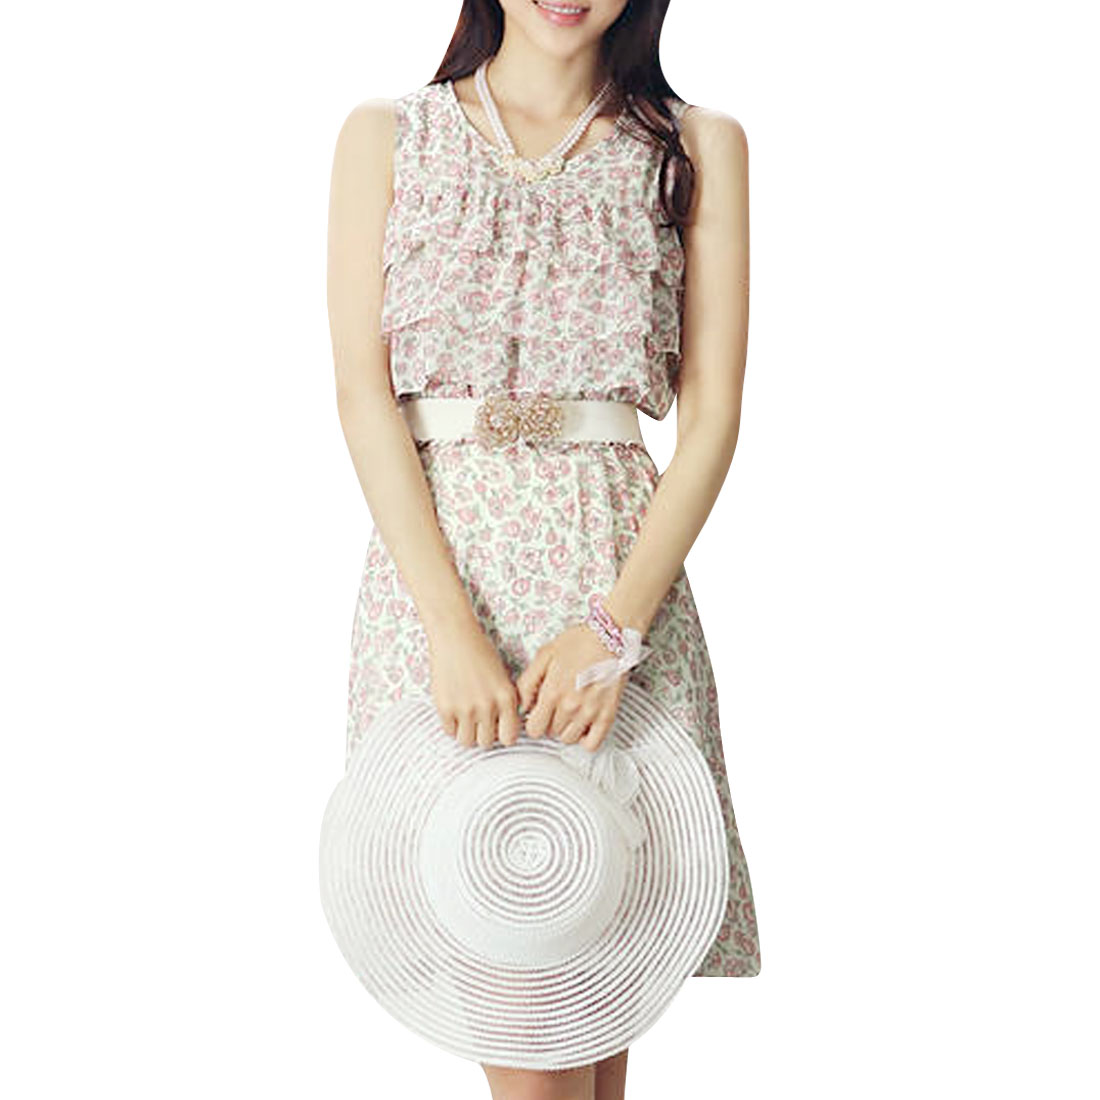 Ladies Round Neck Floral Prints Tiered Ruffles White Knee-Length Dress XS